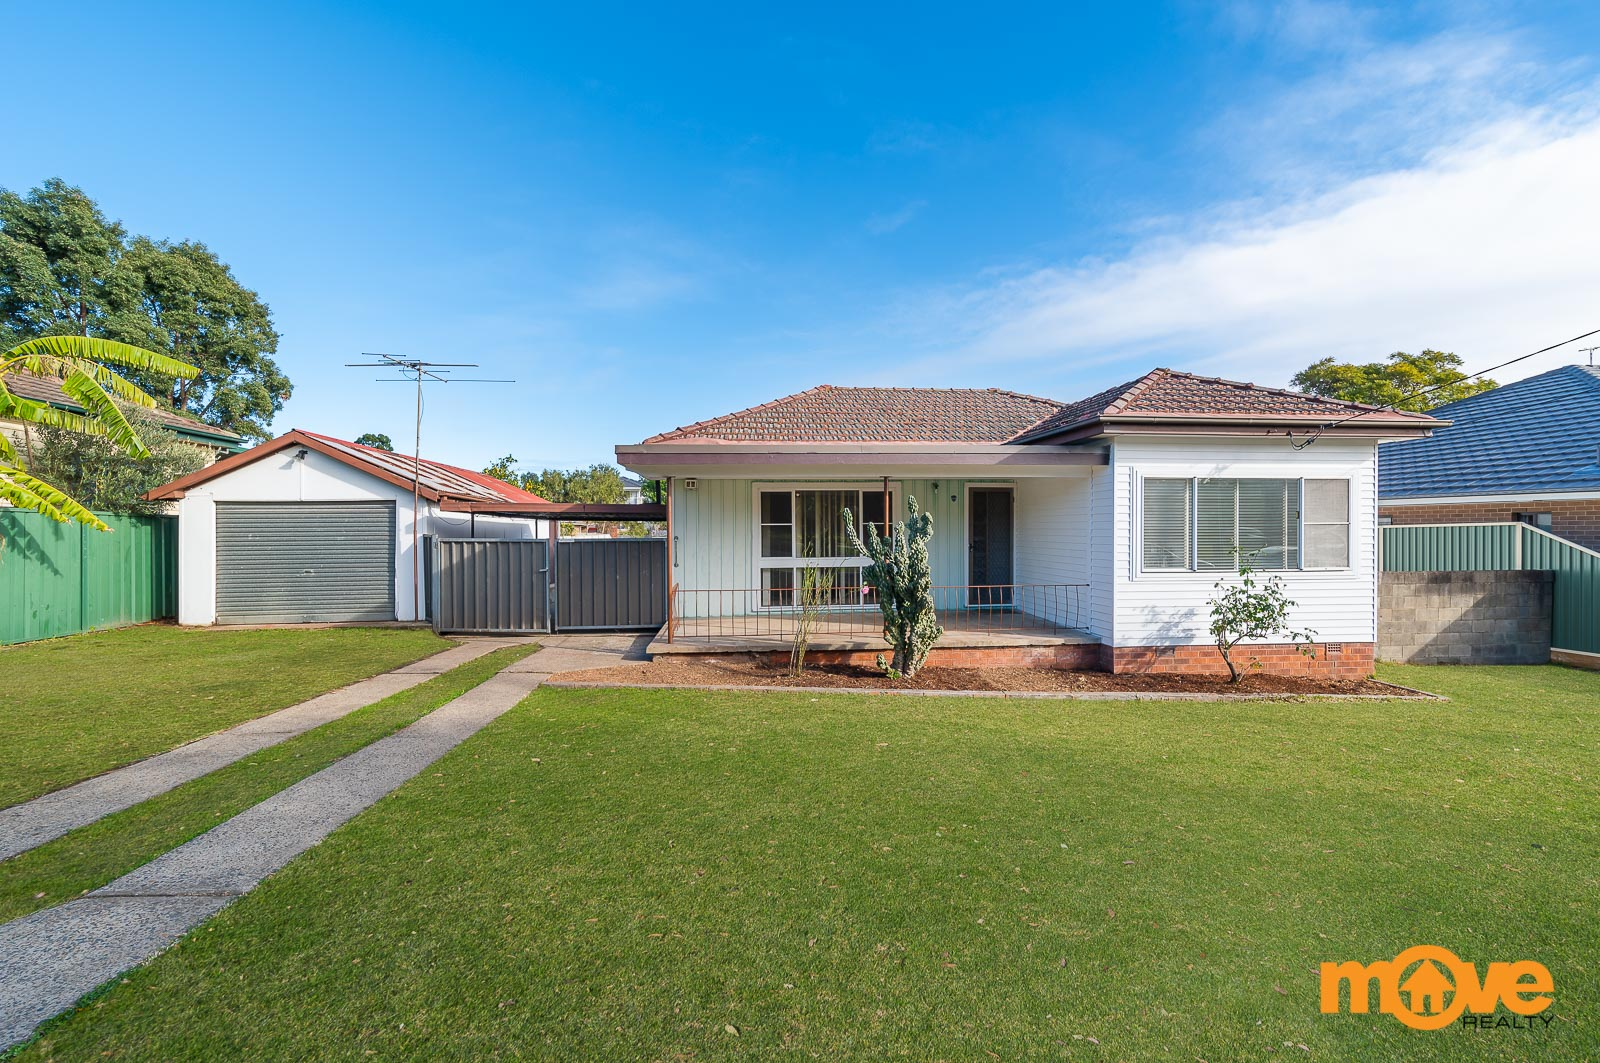 Sold118 Bogalara Road, Old Toongabbie NSW 2146